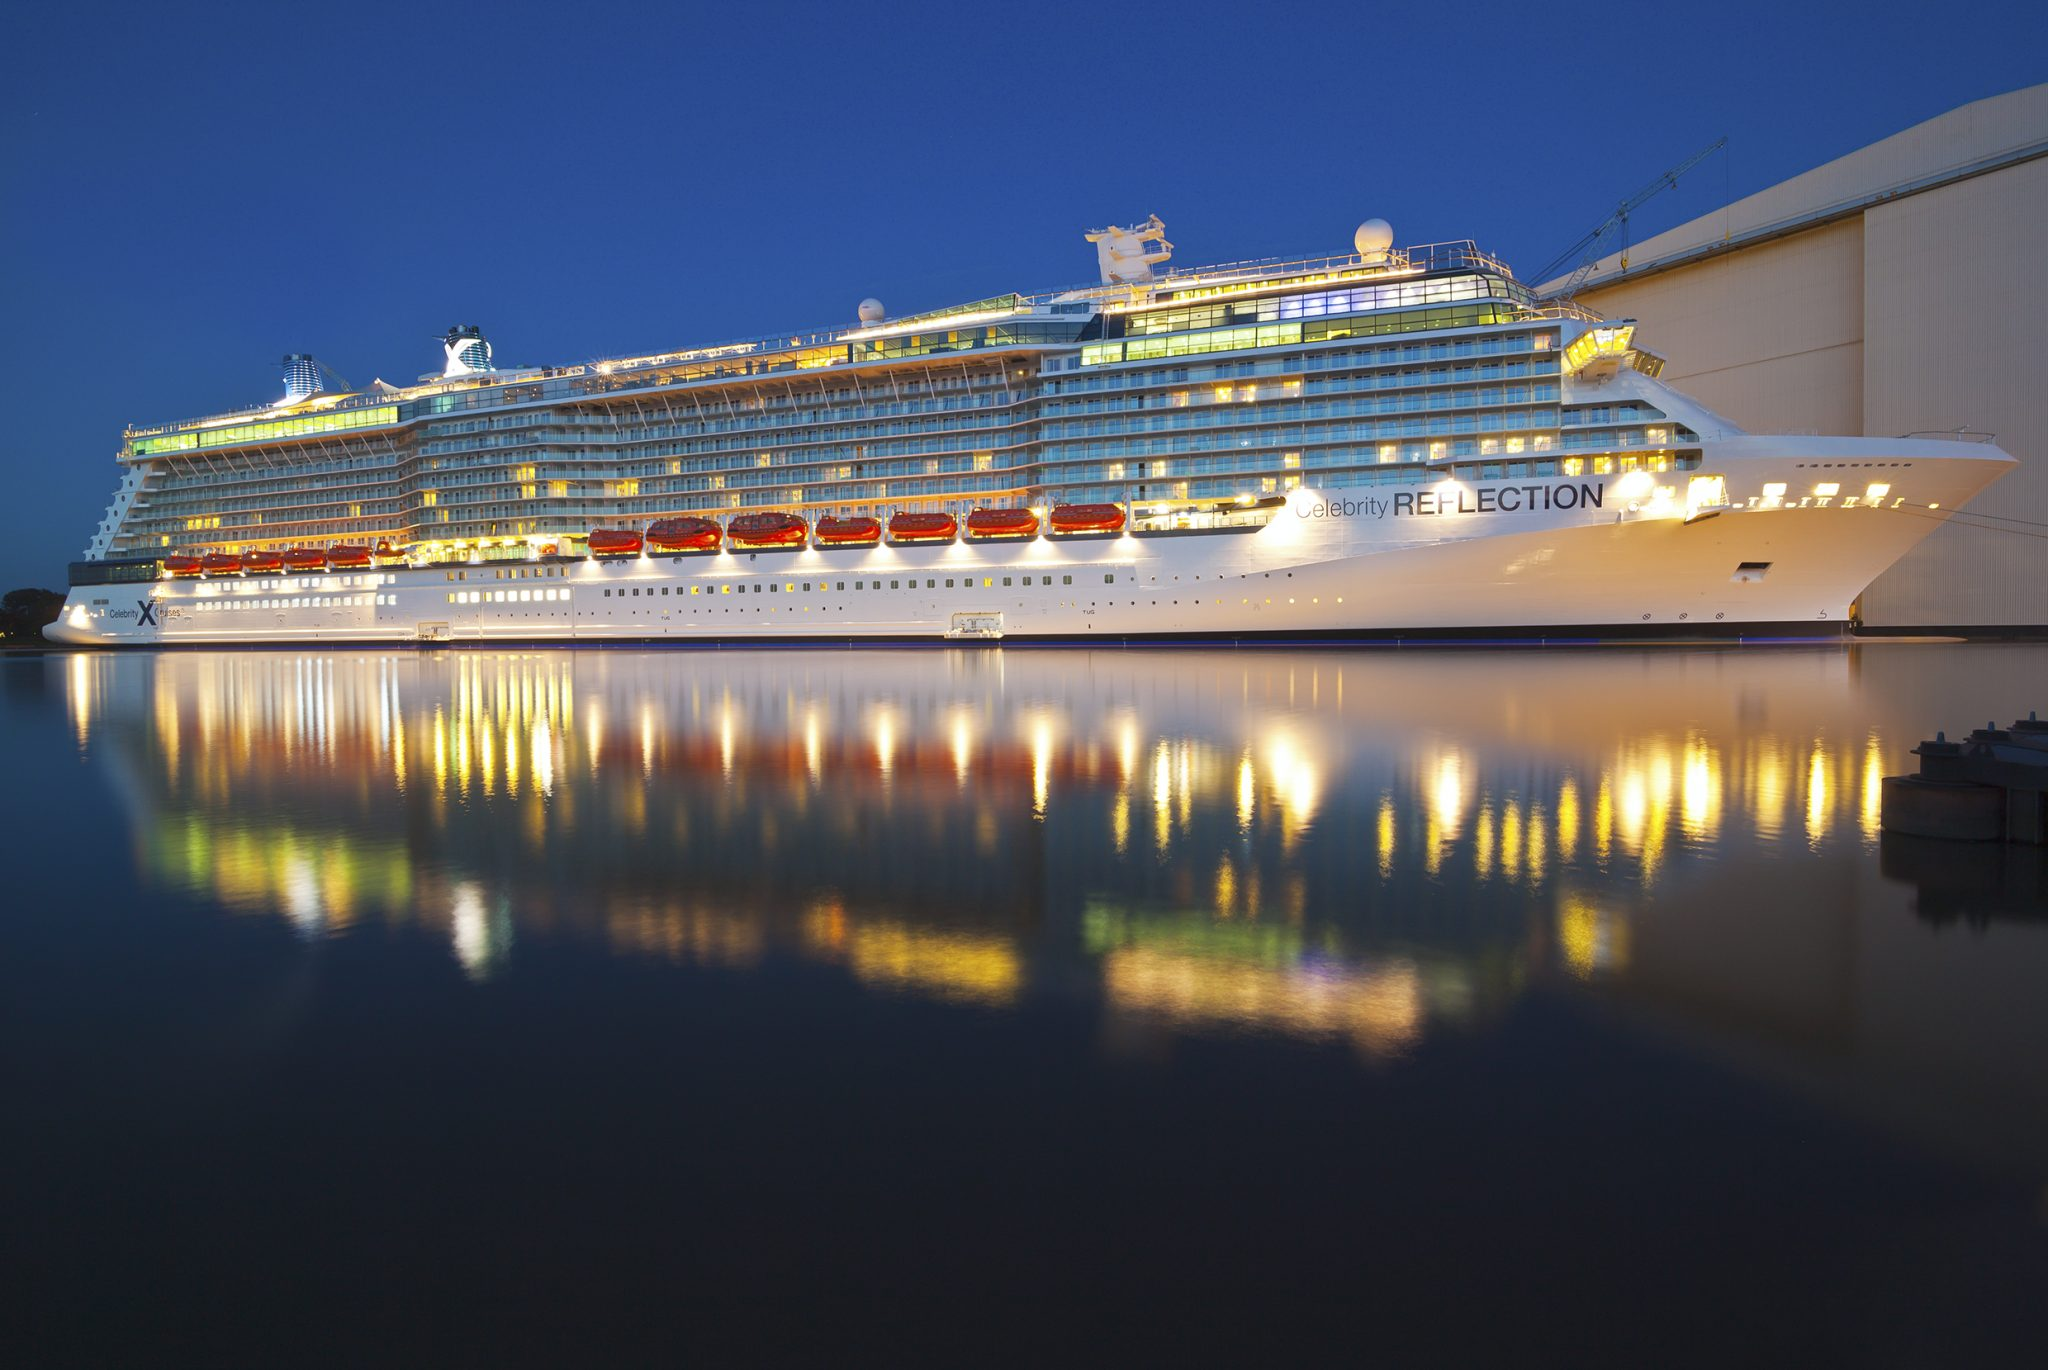 La tua crociera a bordo di Celebrity Reflection